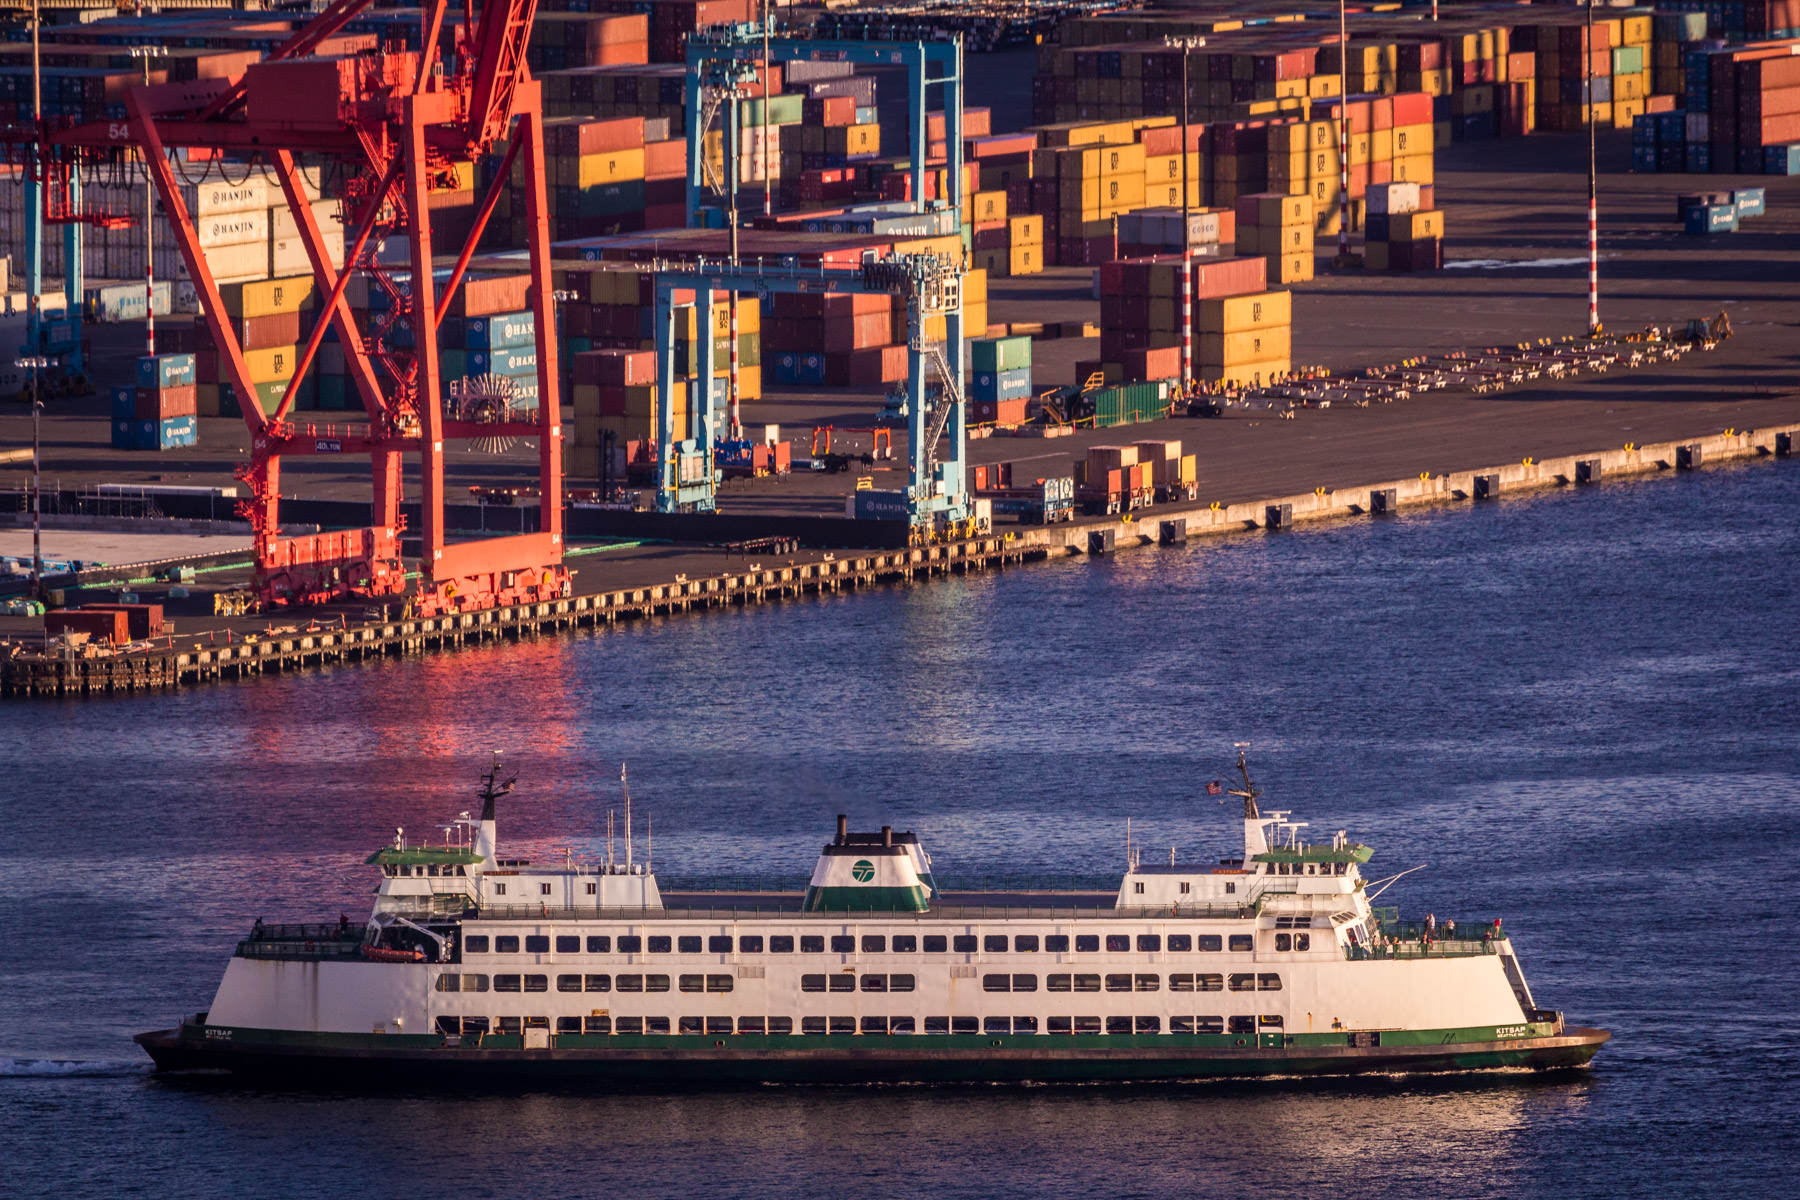 A Washington State Ferry leaves the Seattle Ferry Terminal as the sun begins to set on Puget Sound.